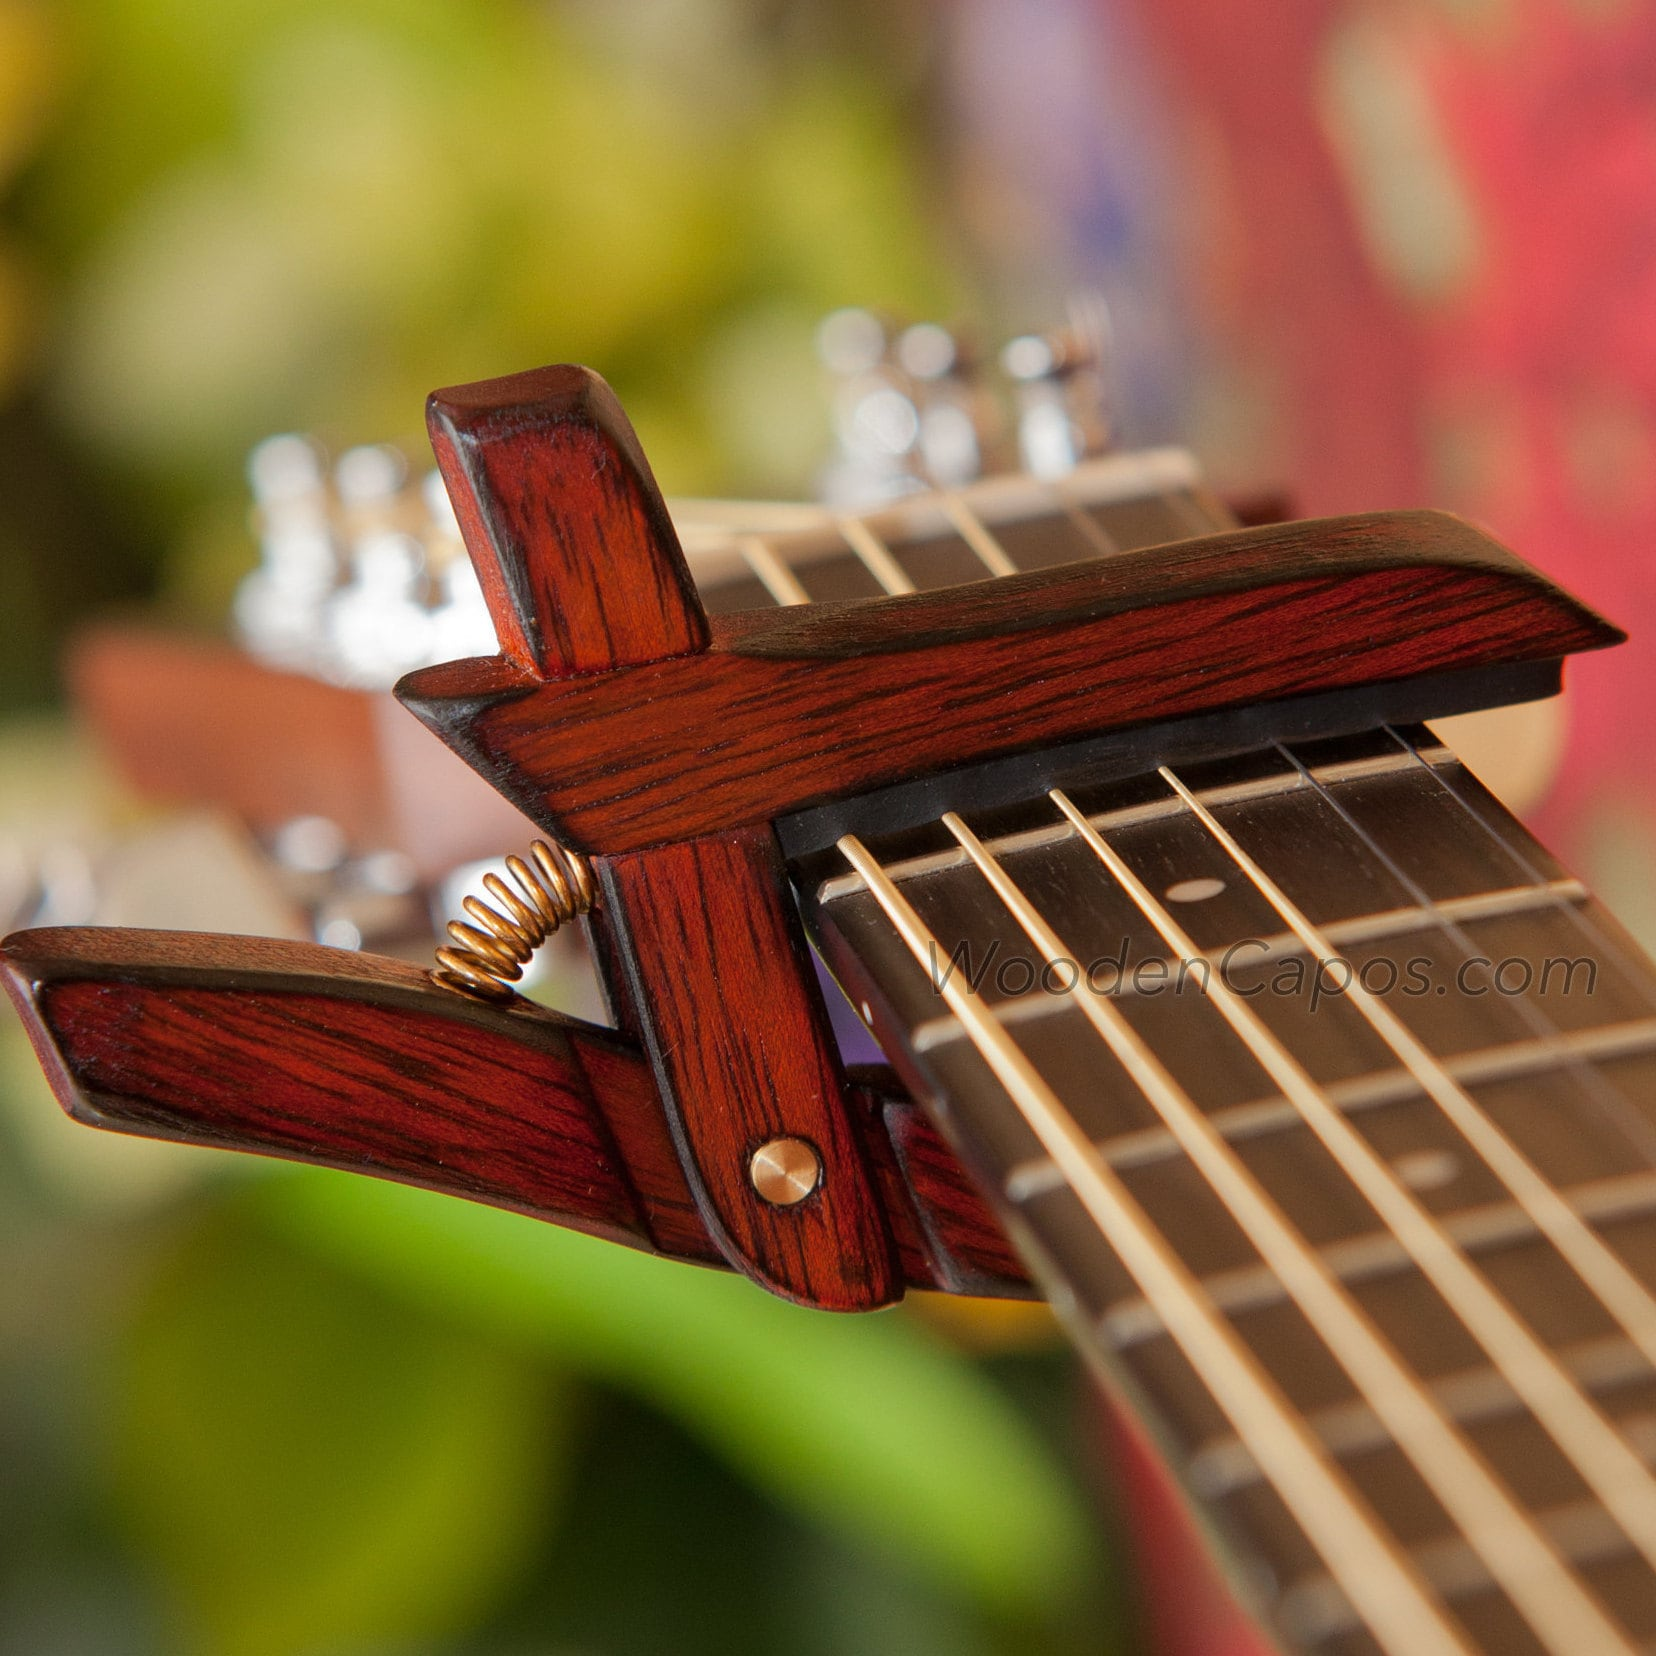 Wooden Guitar Accessories Handmade By Woodencapos On Etsy